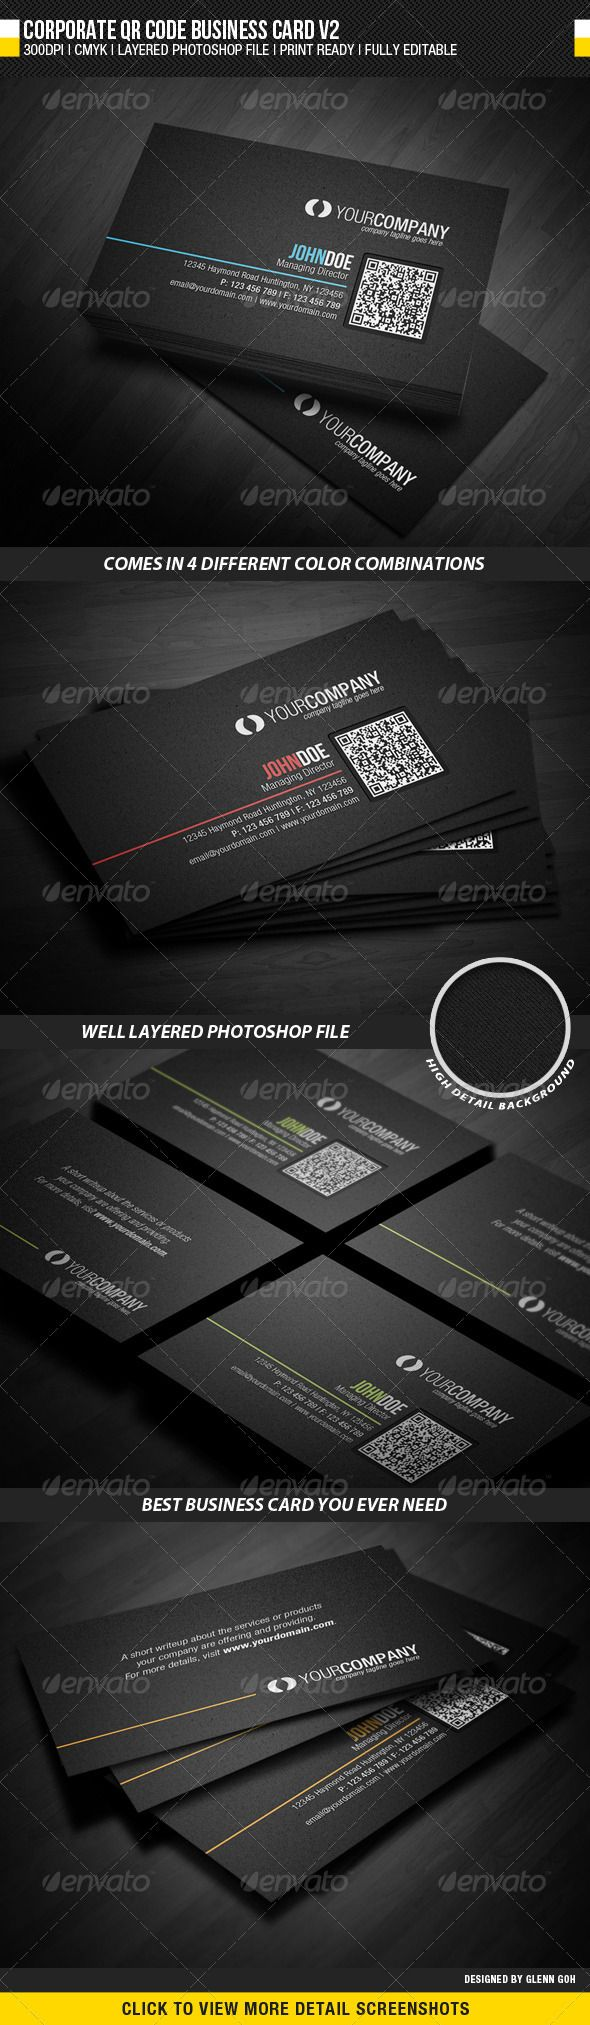 117 best business cards psd with qr code images on pinterest corporate qr code business card v2 reheart